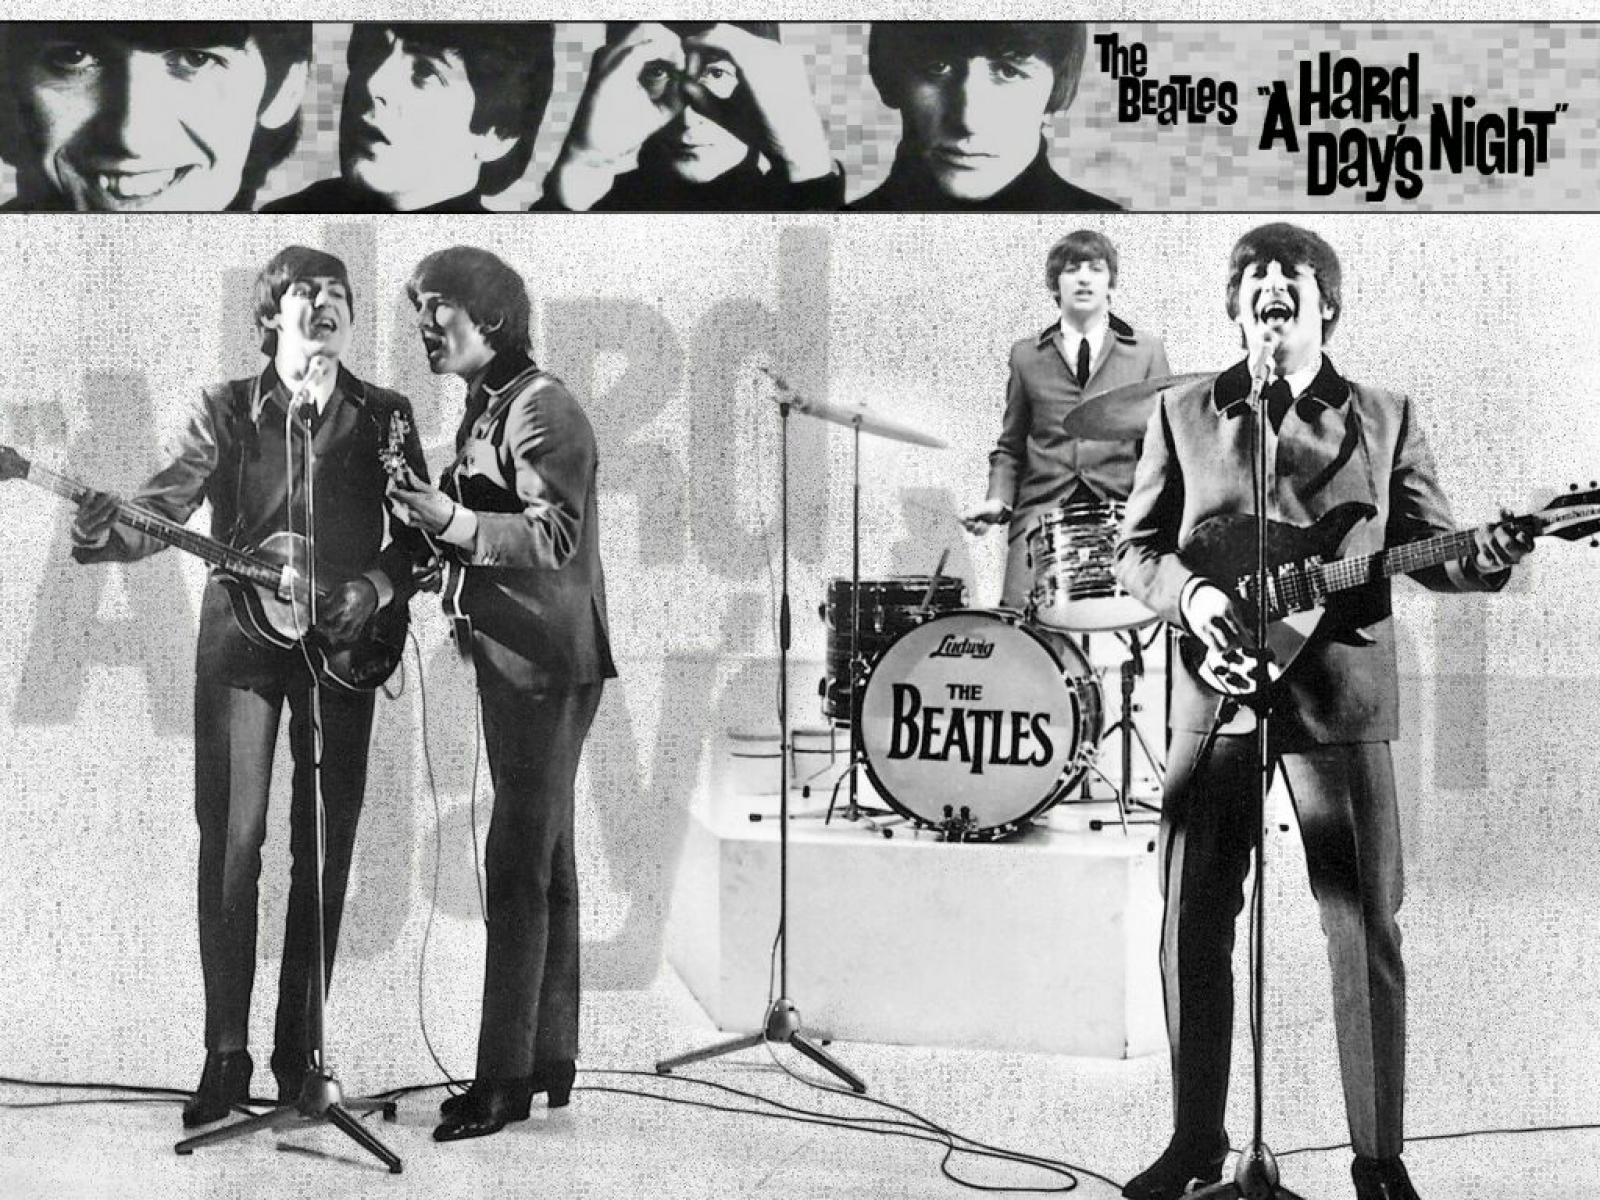 http://4.bp.blogspot.com/-G5qOPSWJMQU/TlQrOwaIdaI/AAAAAAAAAAM/xQqpgQRS7Kw/s1600/the-beatles-wallpaper.jpg